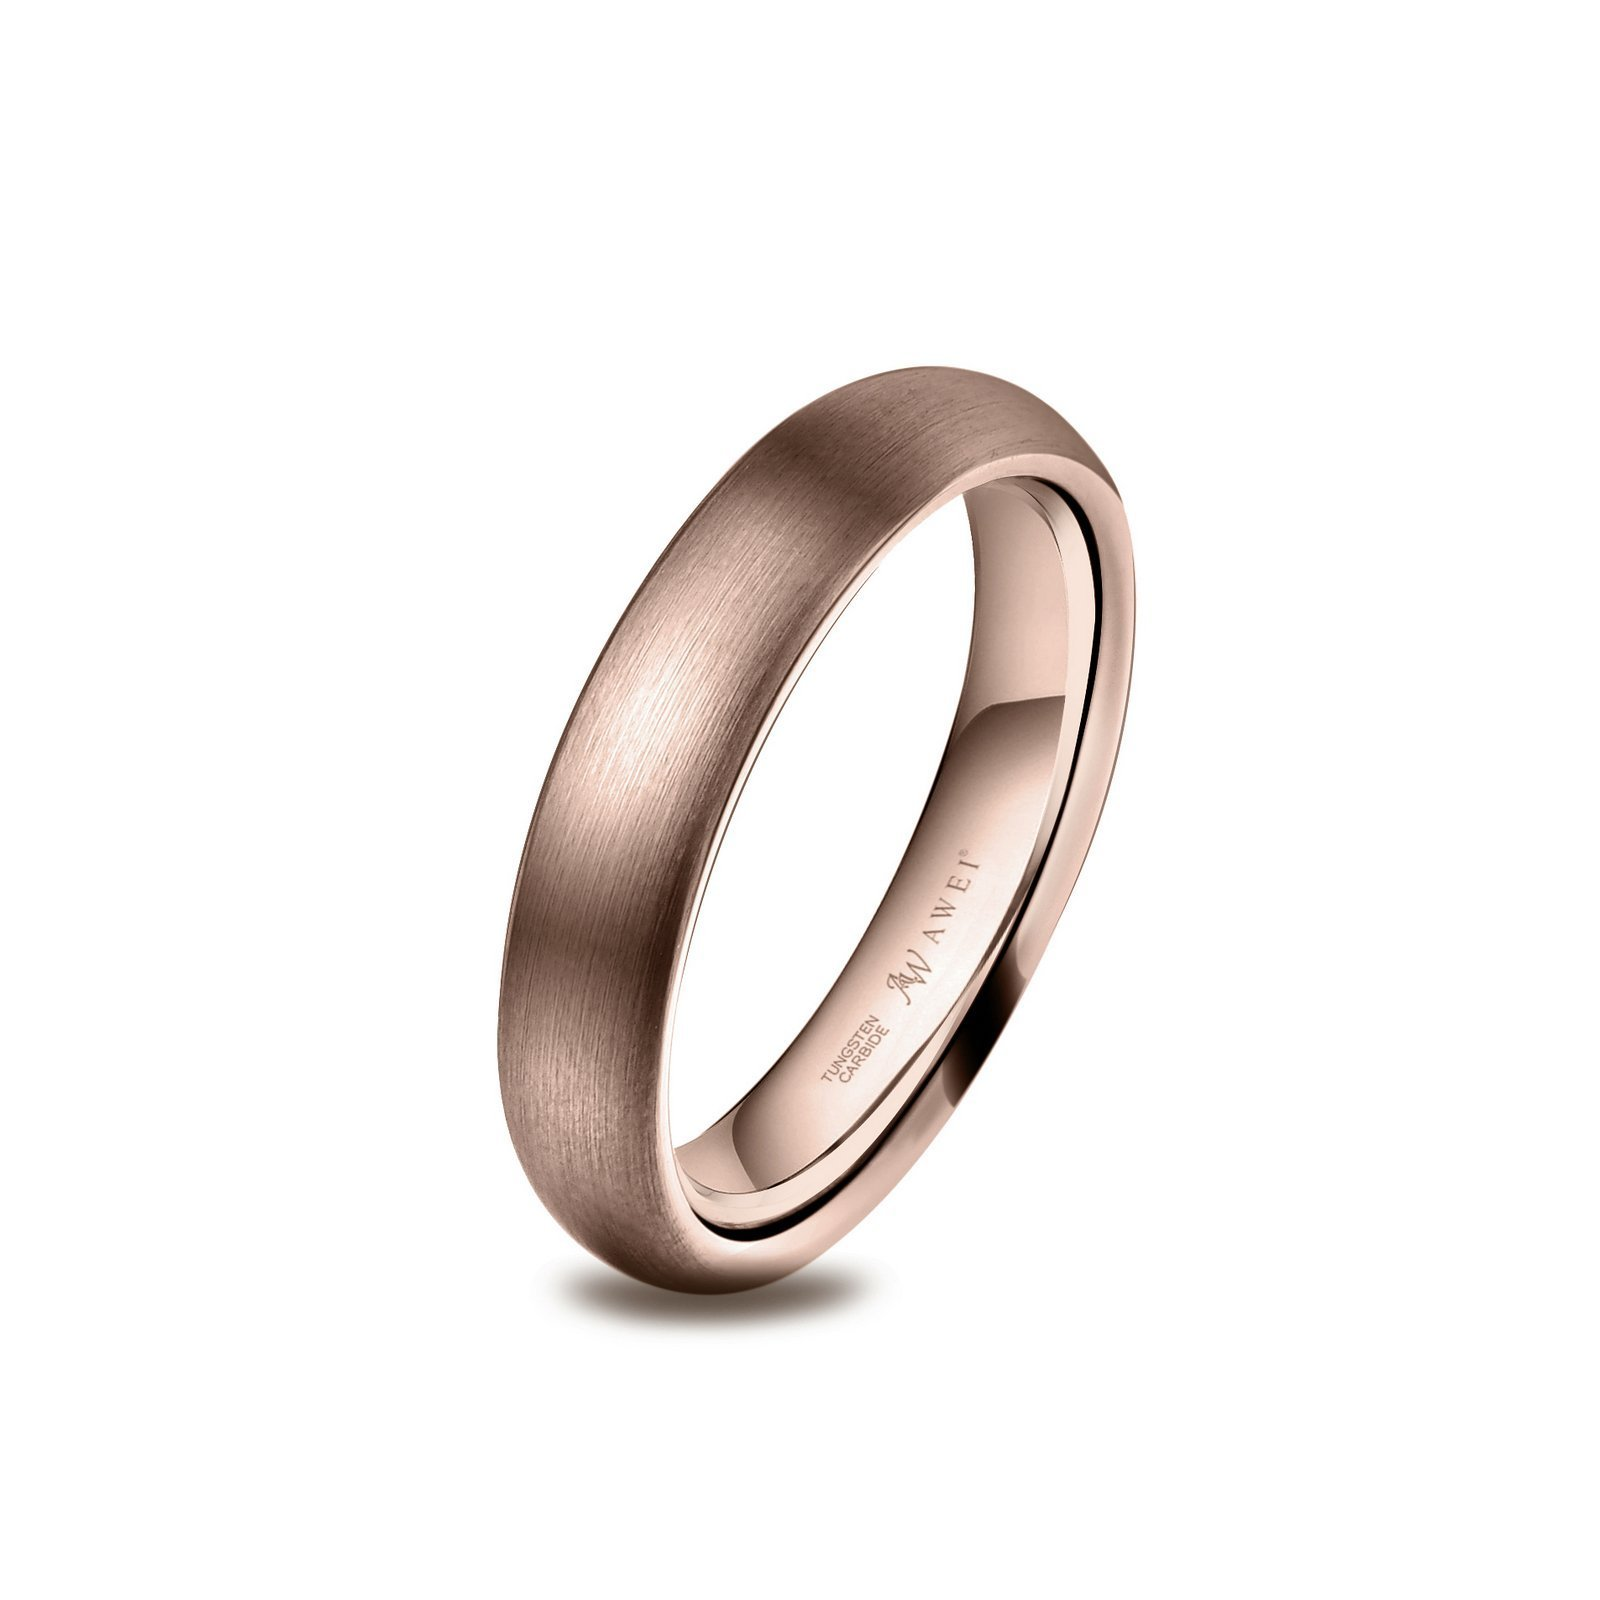 AW Tungsten Rings Matte Brushed Wedding Band - Rose Gold Unisex Comfort Fit Engagement Ring 4mm, Size 10